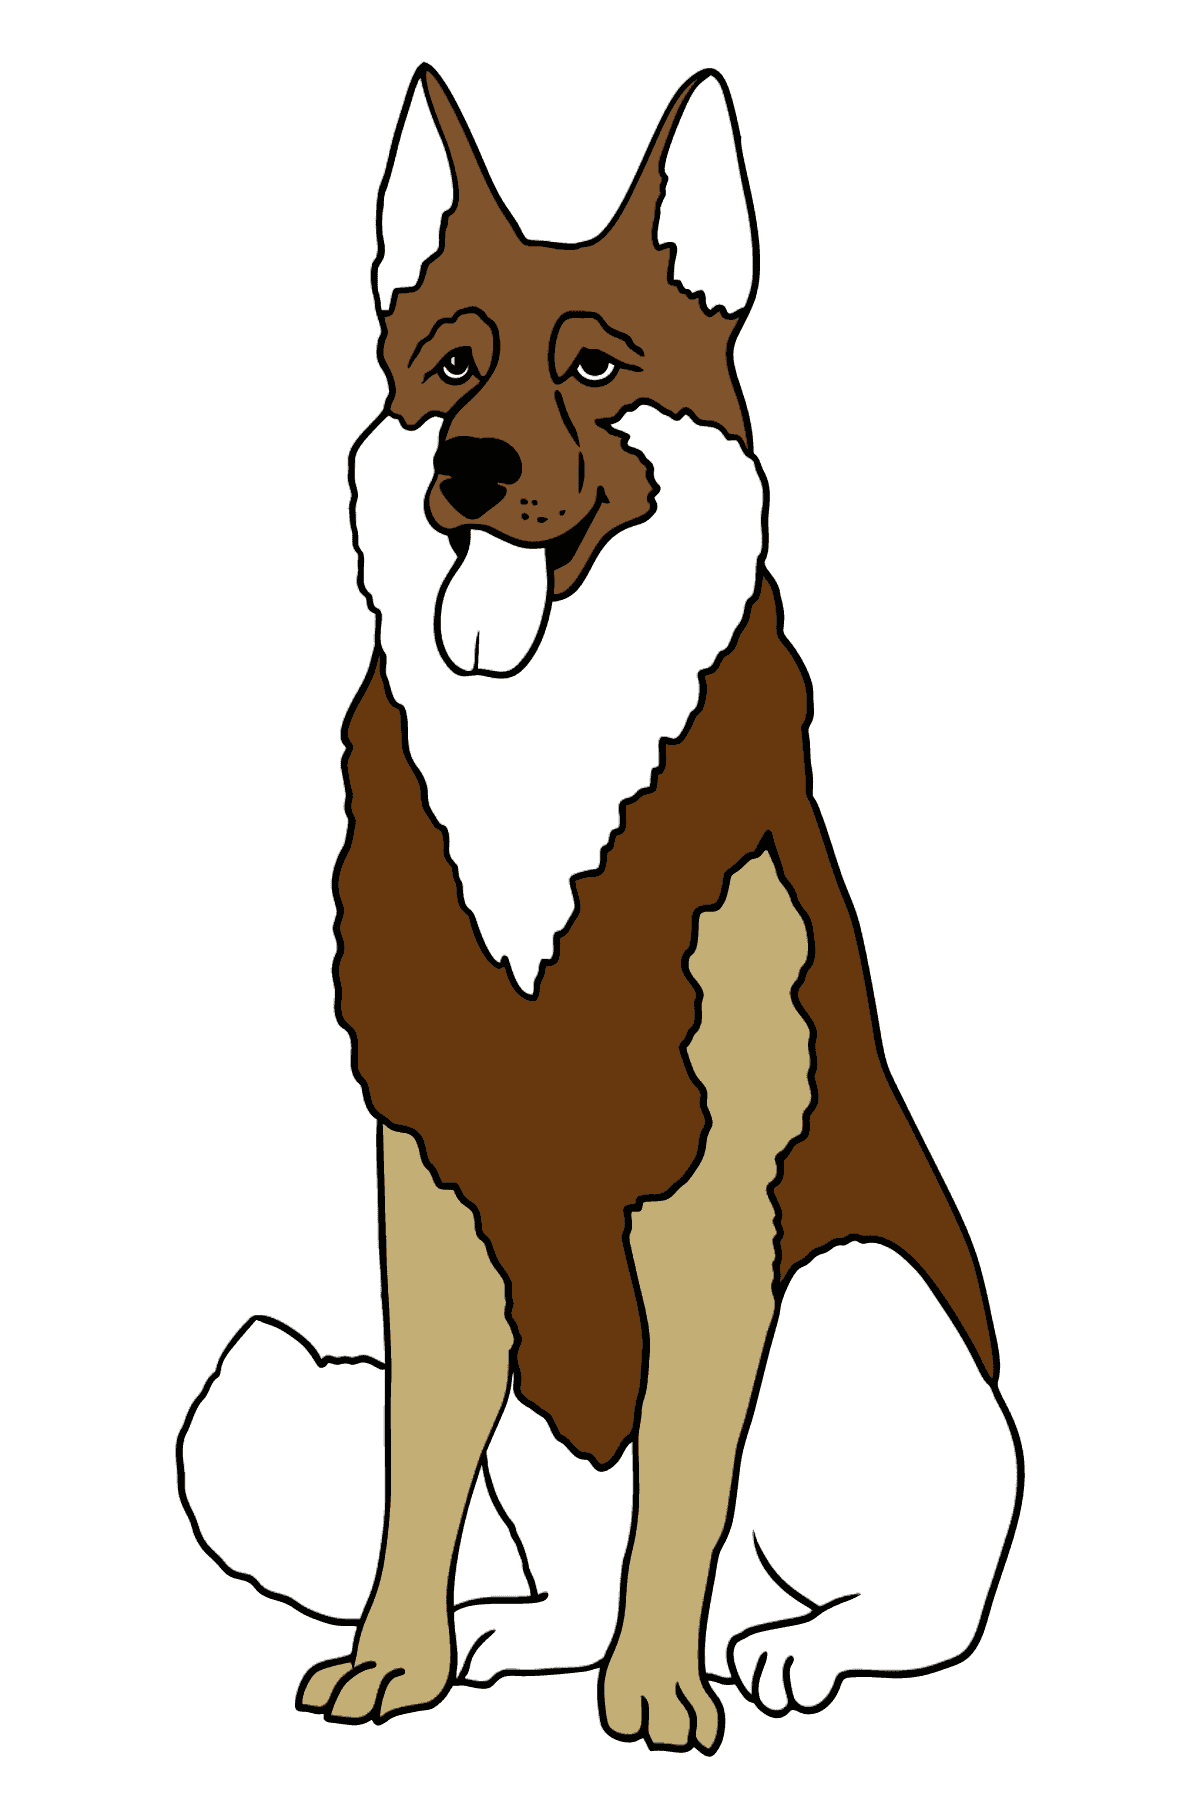 Shepherd coloring page - Coloring Pages for Kids